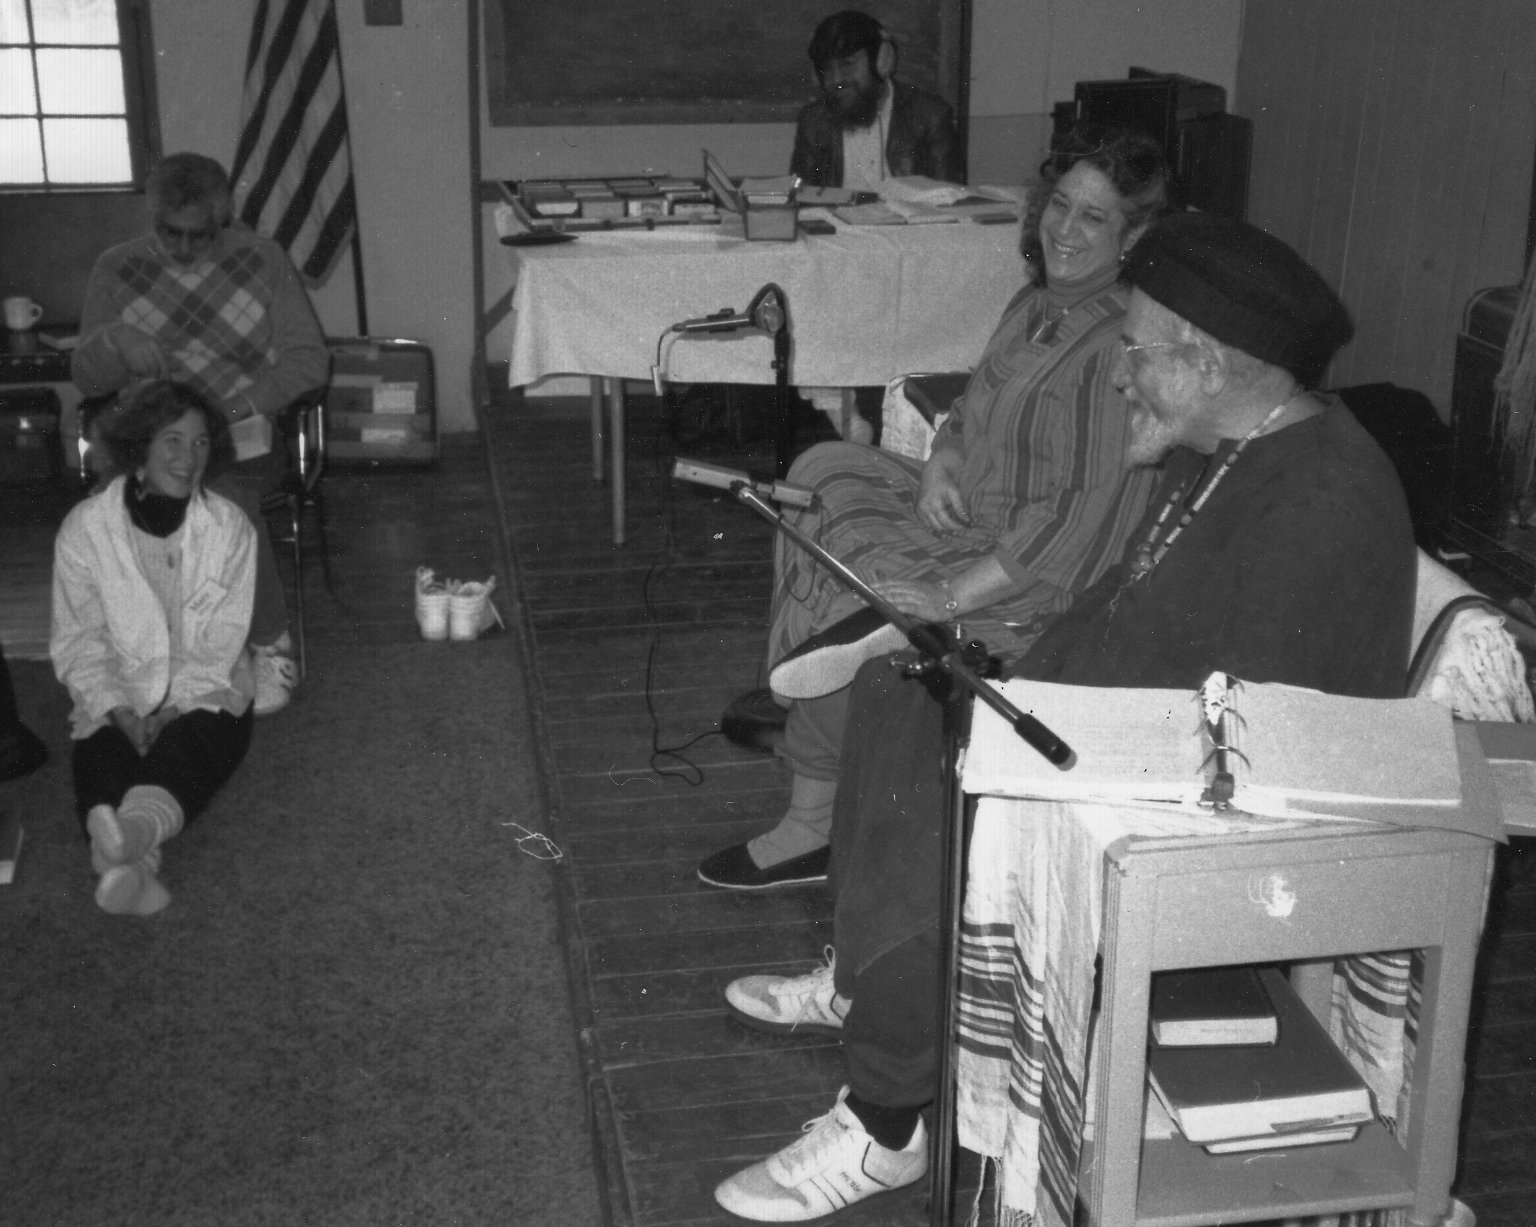 Rabbi Zalman Schachter-Shalomi teaching with his partner, Eve Ilsen, in their Wisdom School, ca. 1990.